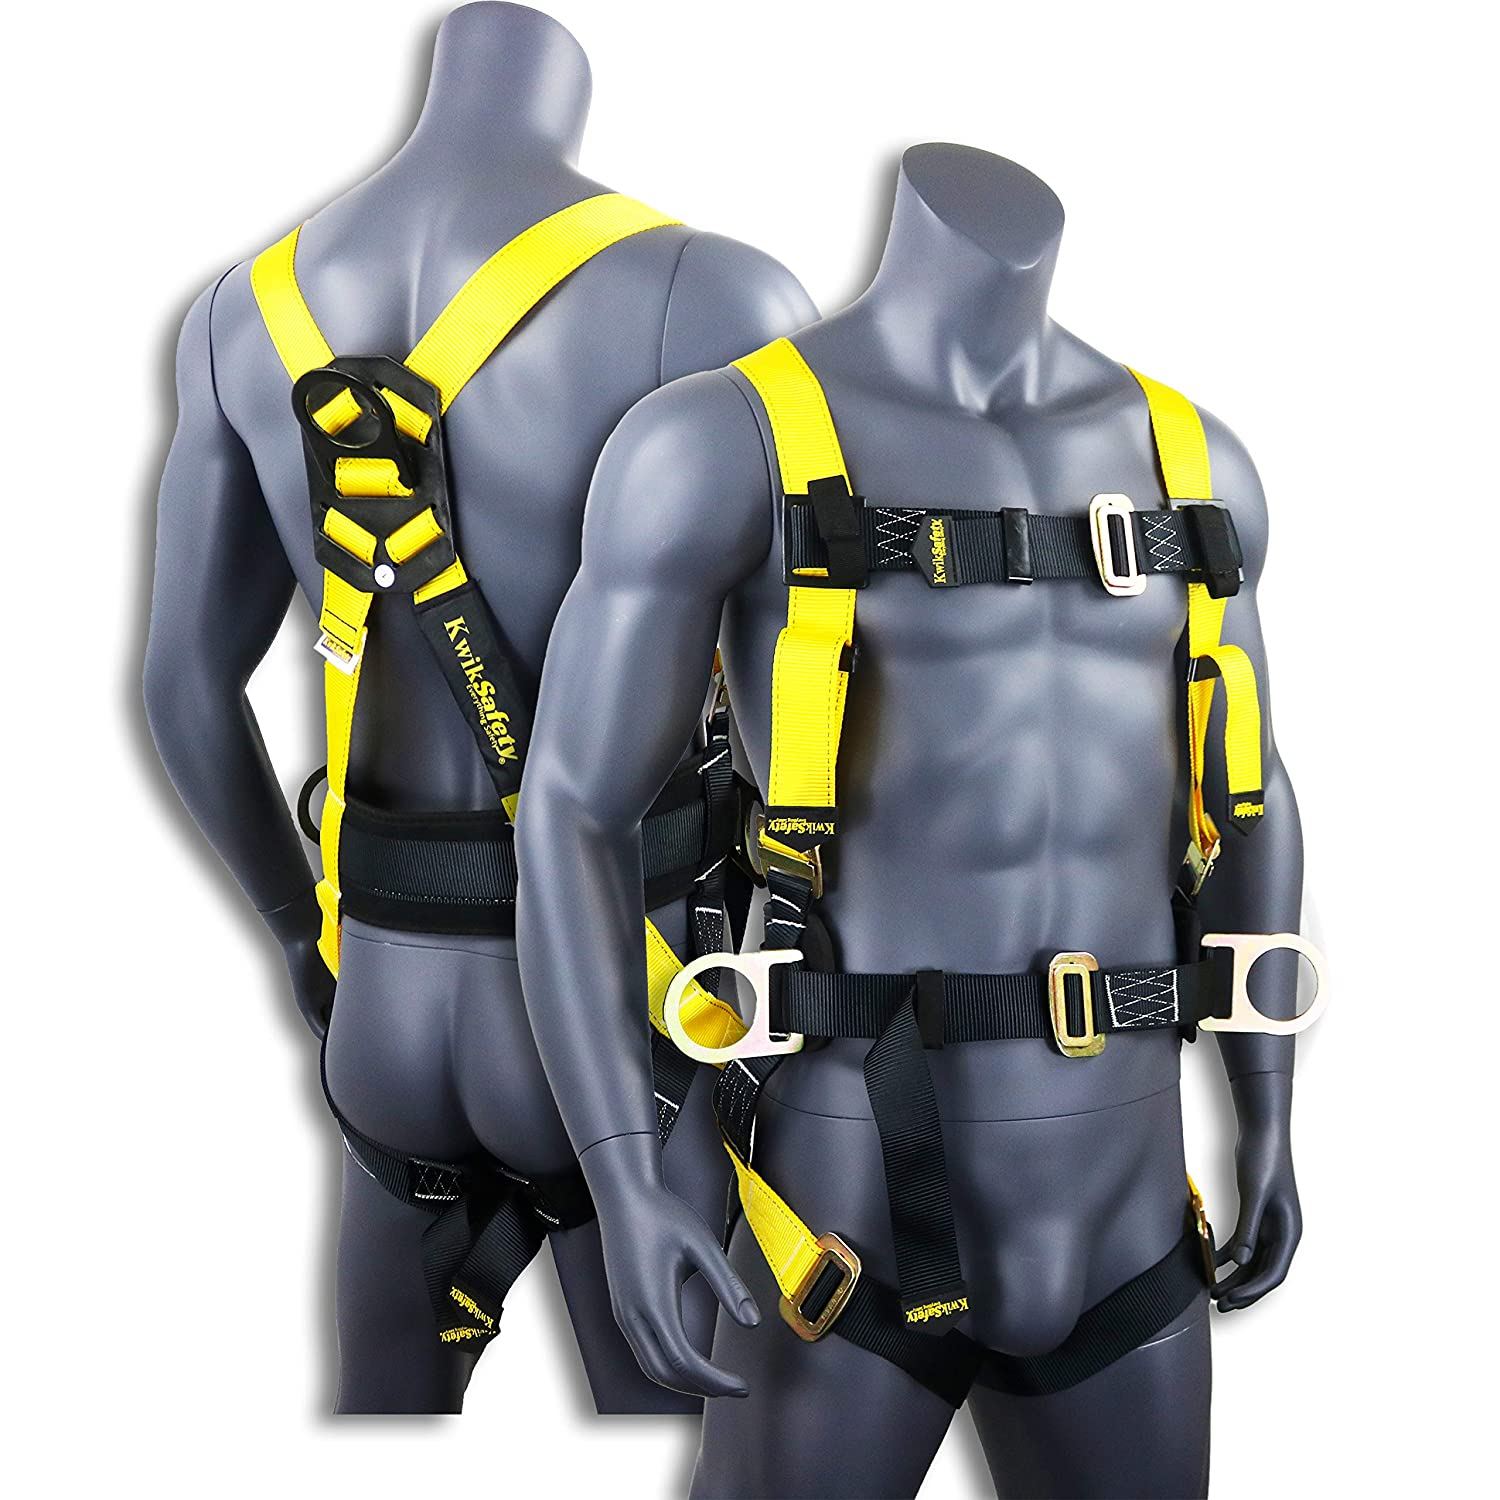 KwikSafety (Charlotte, NC) HURRICANE   OSHA ANSI Fall Protection Full Body Safety Harness w/Back Support   Personal Protective Equipment   Dorsal Ring Side D-Rings   Construction Industrial Roofing